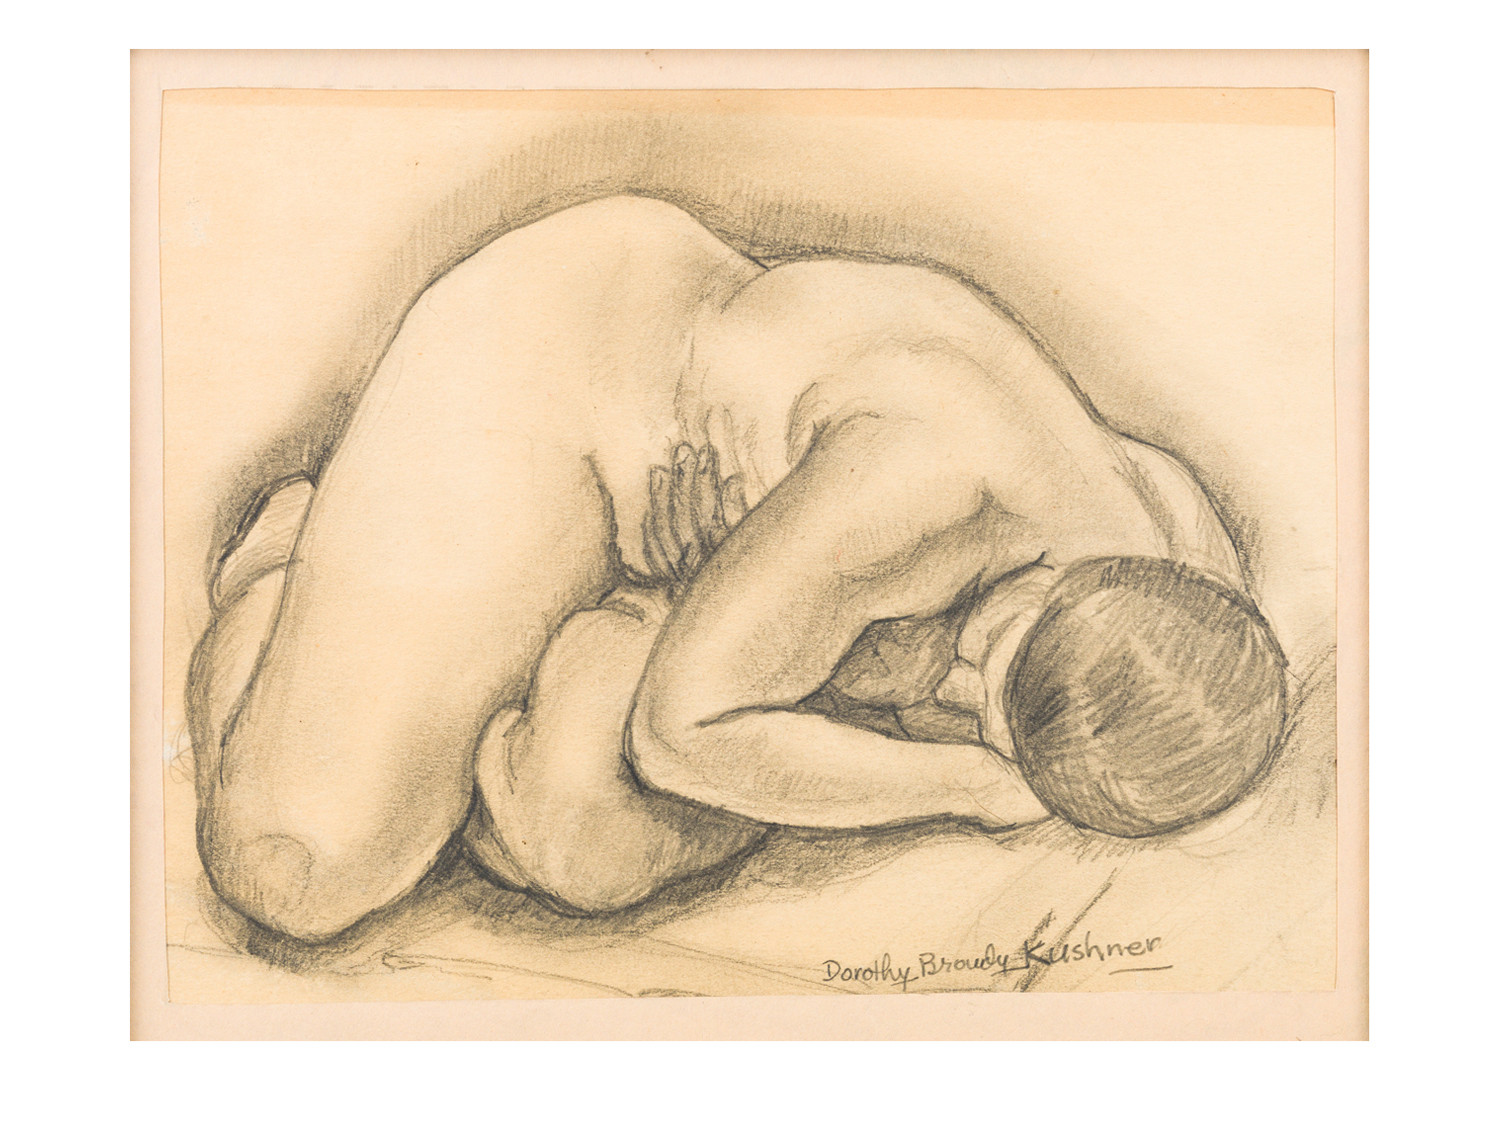 Dorothy Browdy Kushner Nude Pencil + Watercolor 1930s